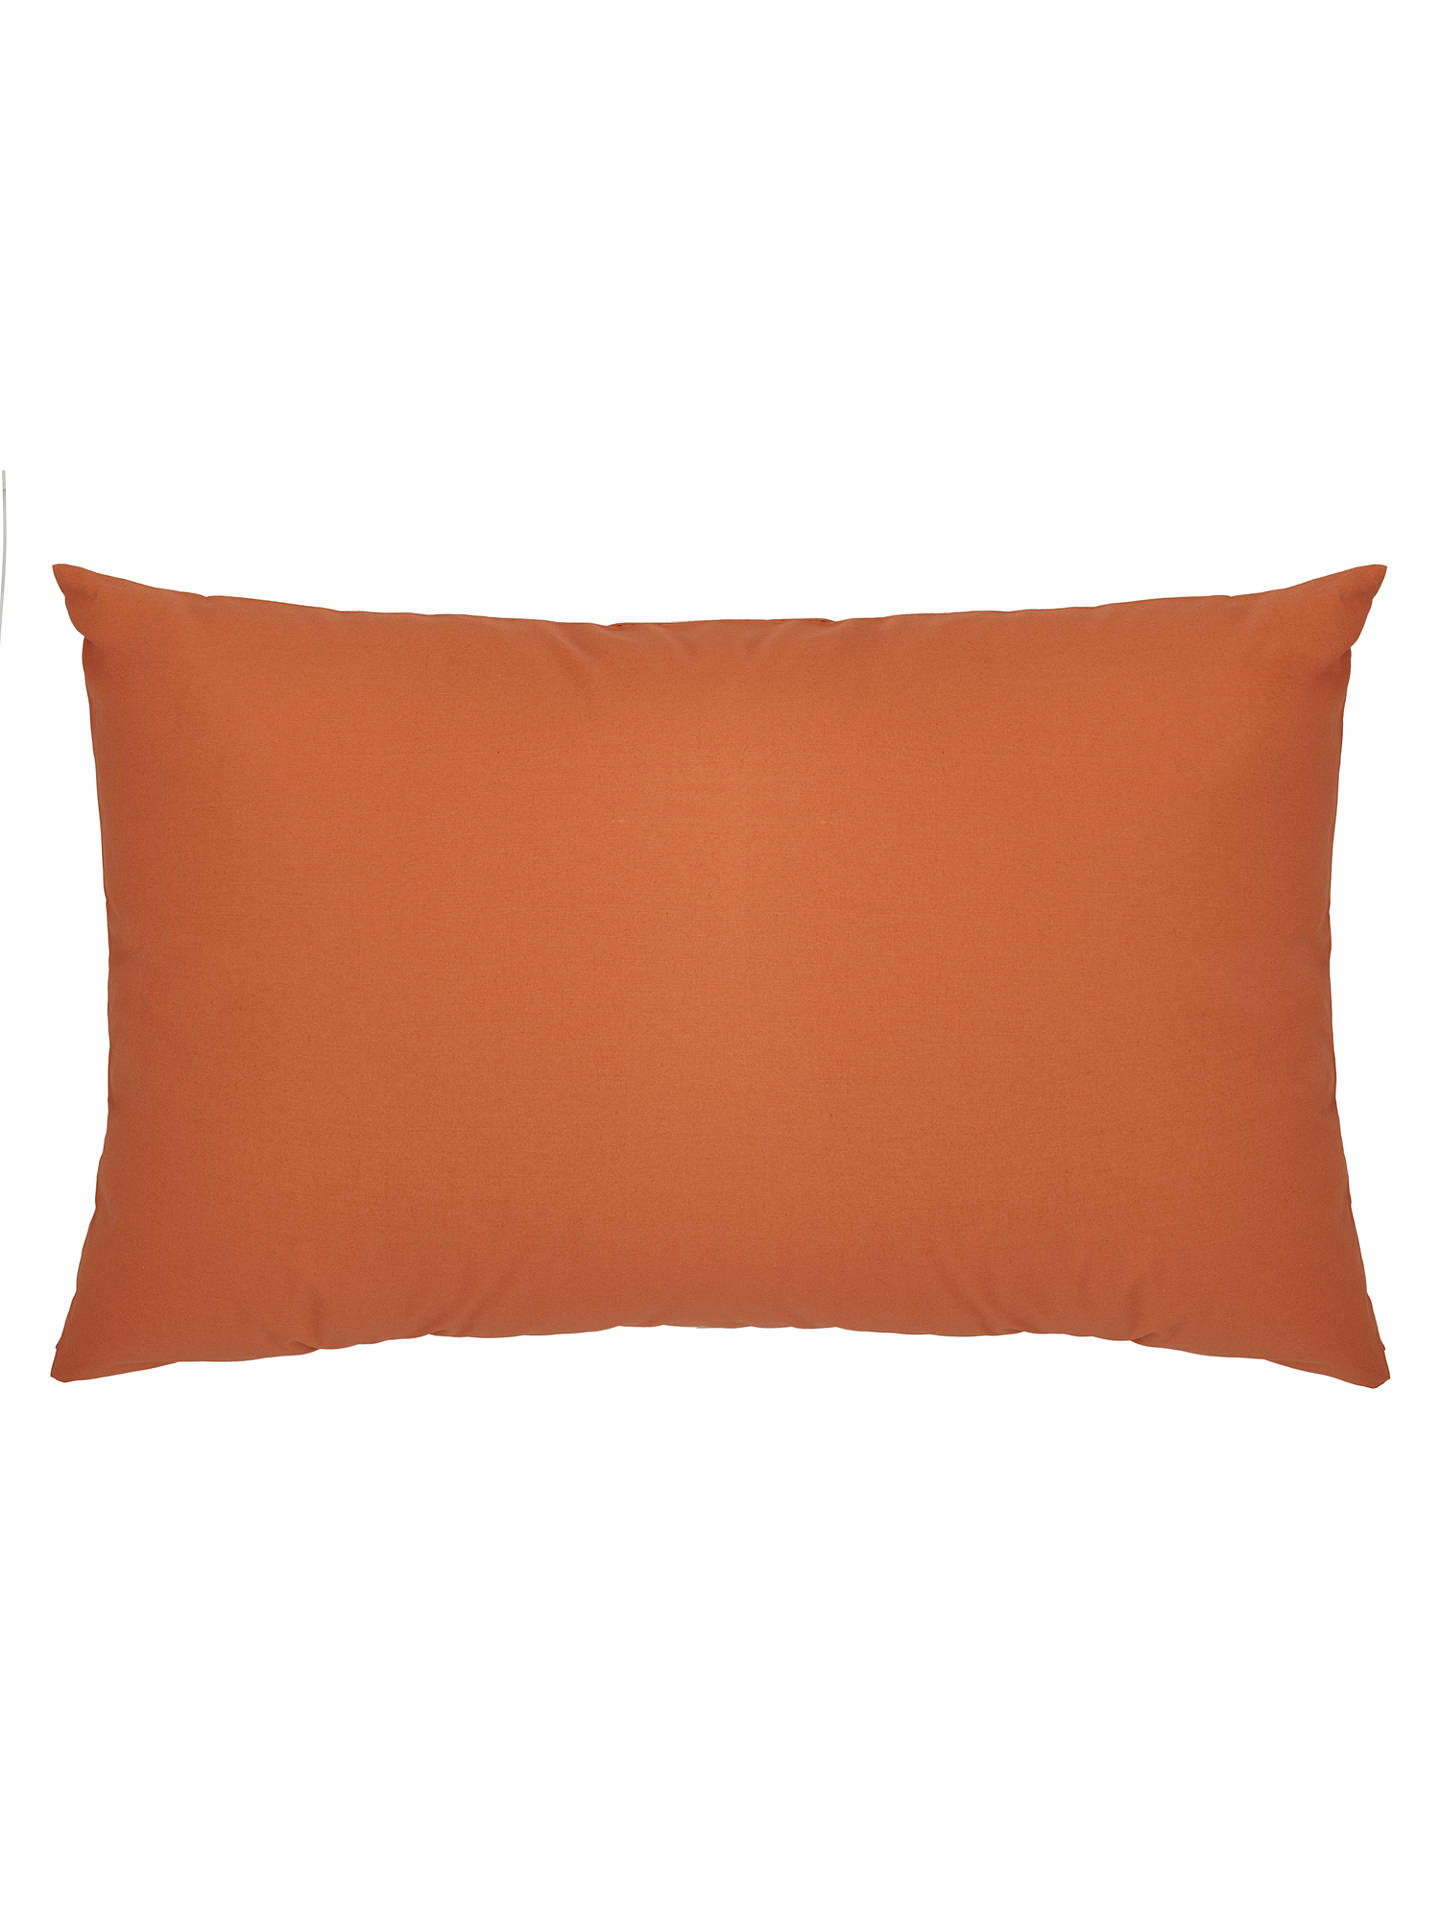 Buy John Lewis & Partners Crisp and Fresh 200 Thread Count Egyptian Cotton Oxford Pillowcase, Clementine Online at johnlewis.com